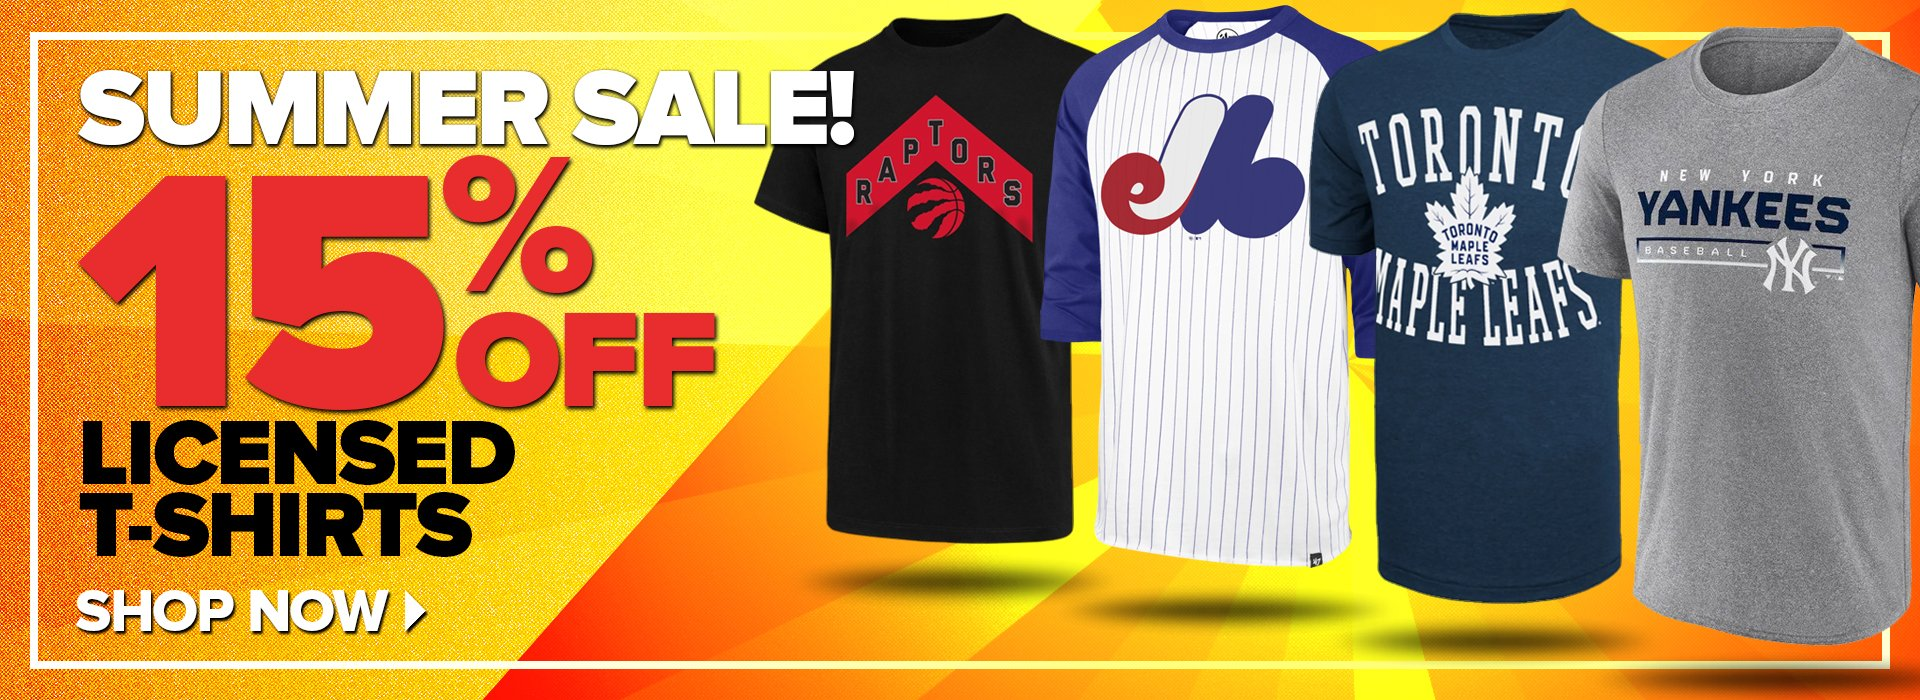 20% OFF NHL JERSEY'S! ORDER YOUR FOR THIS SEASON!